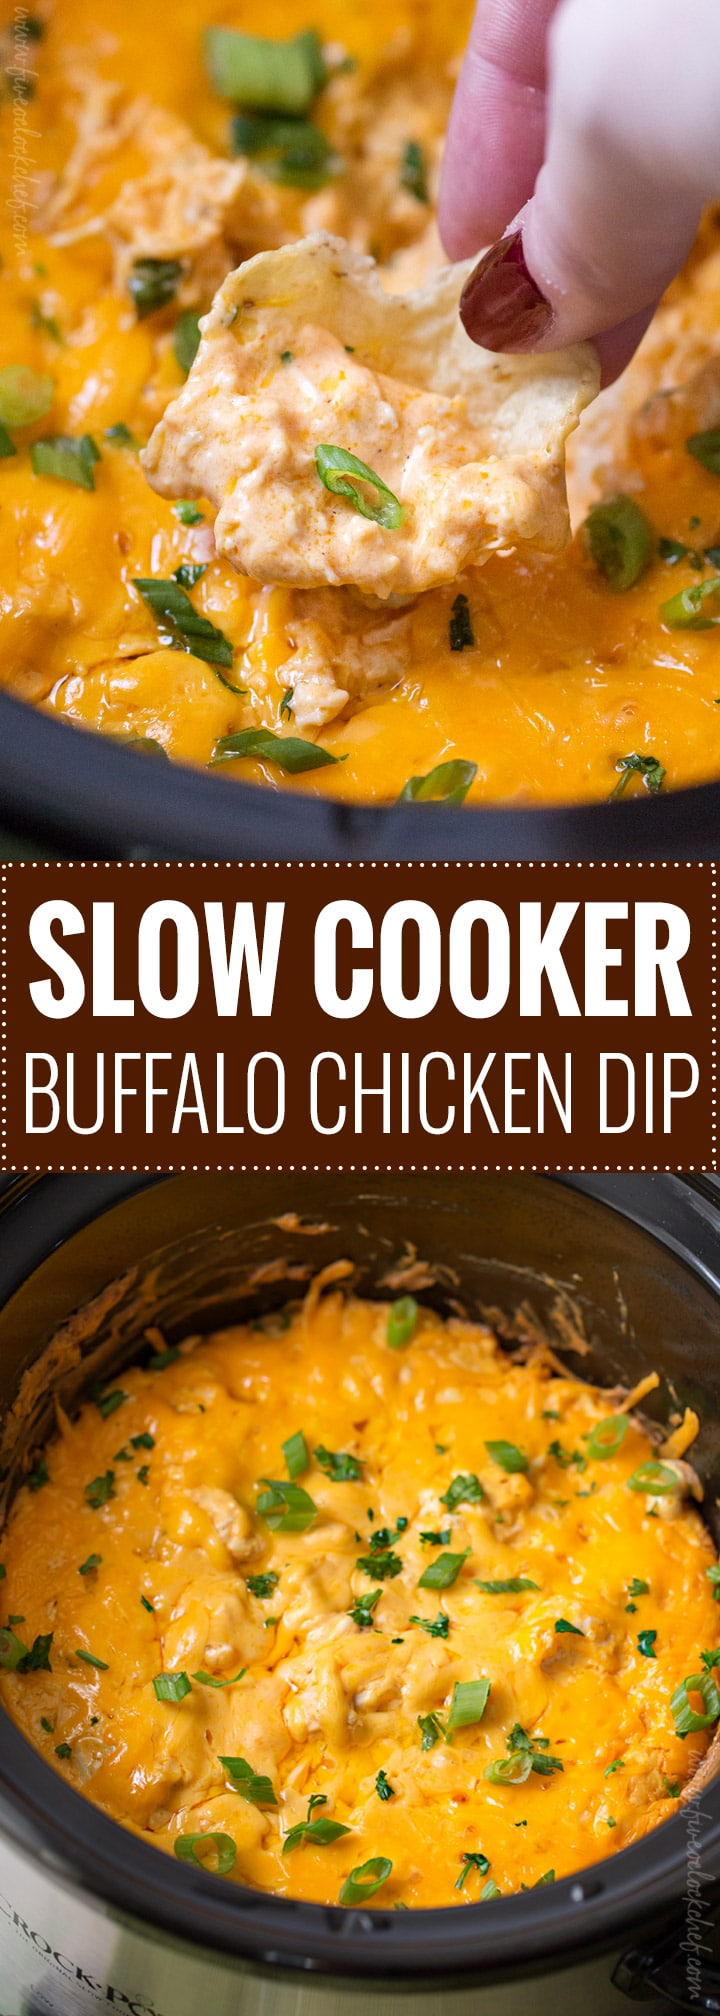 Mar 23, · Creamy and cheesy Slow Cooker Buffalo Chicken Dip is everyone's favorite dip! This buffalo chicken dip recipe is full of tender chicken, buffalo sauce, ranch, garlic, cream cheese, and cheddar for the ultimate game day or party appetizer!/5(14).